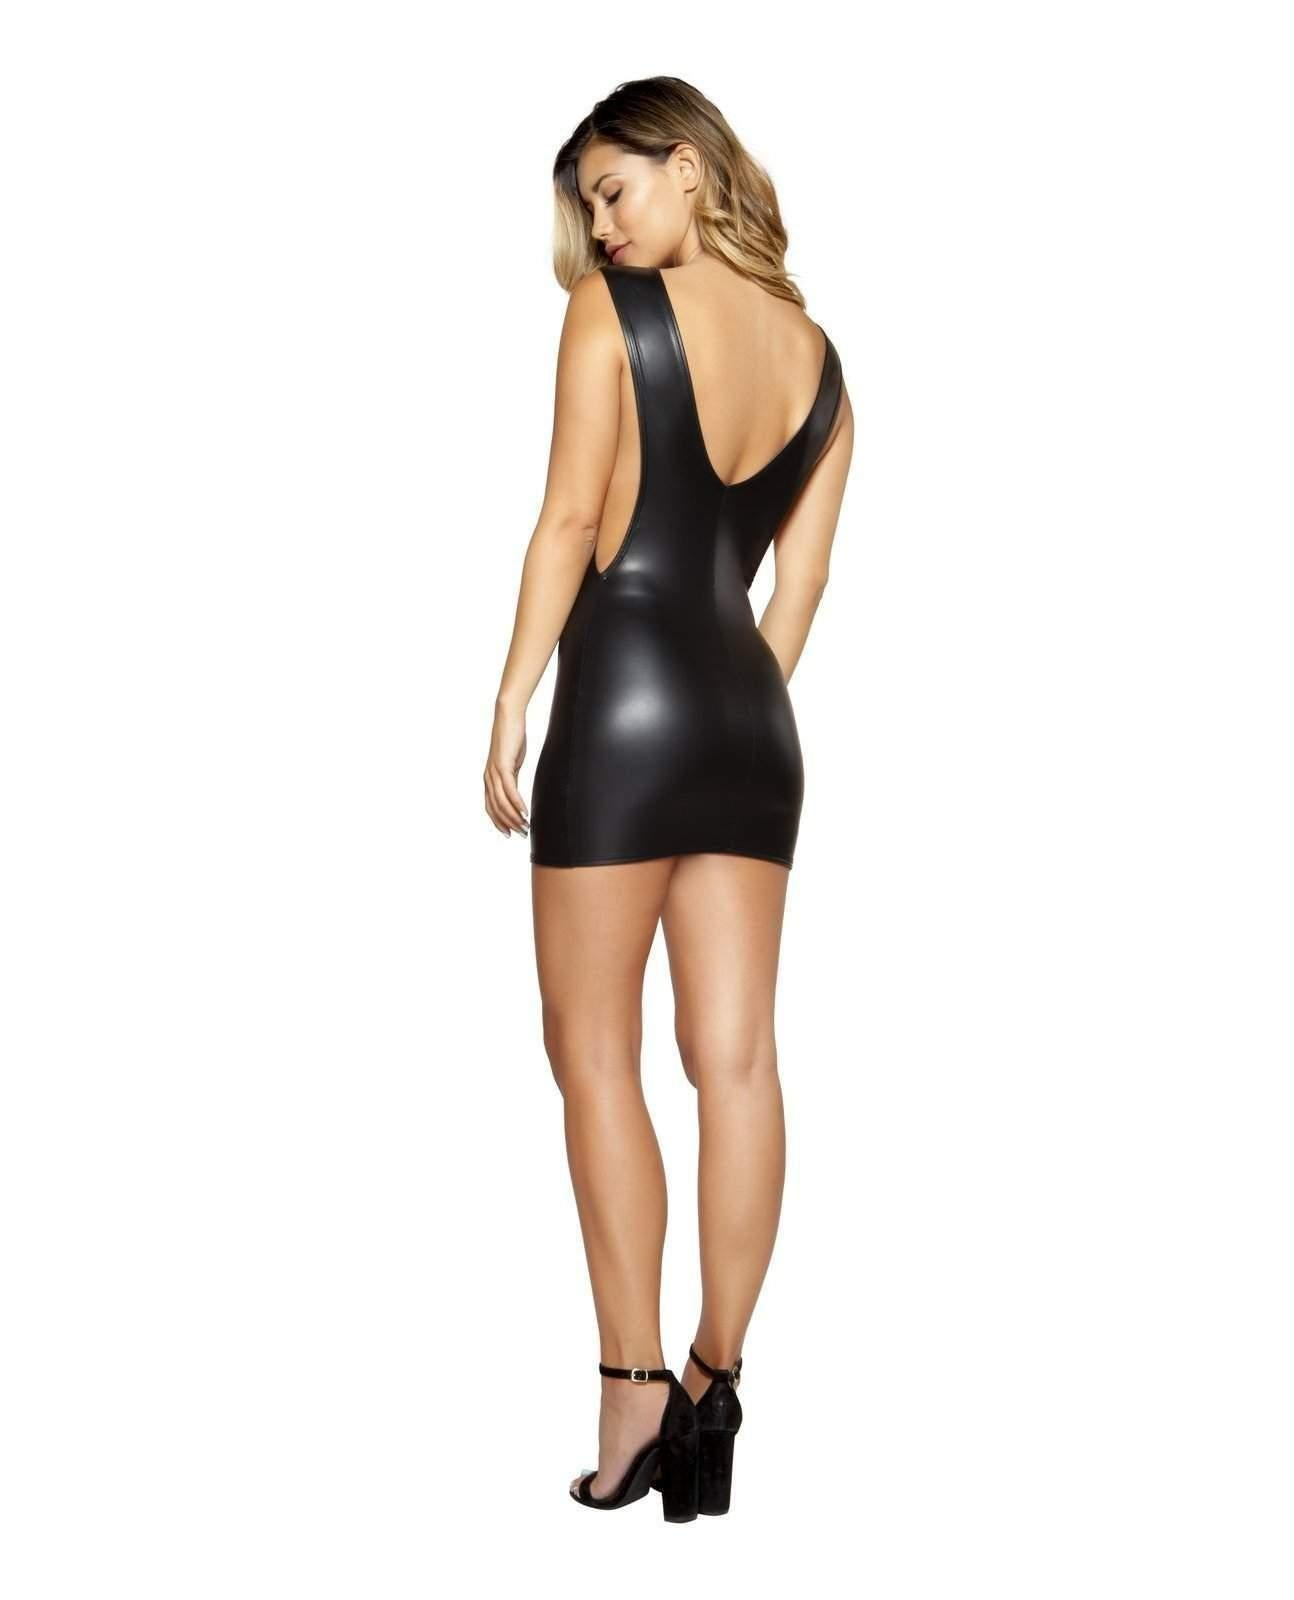 Vinyl Look Dress with Cutout Sides club wear Size SmallColor BlackNakees